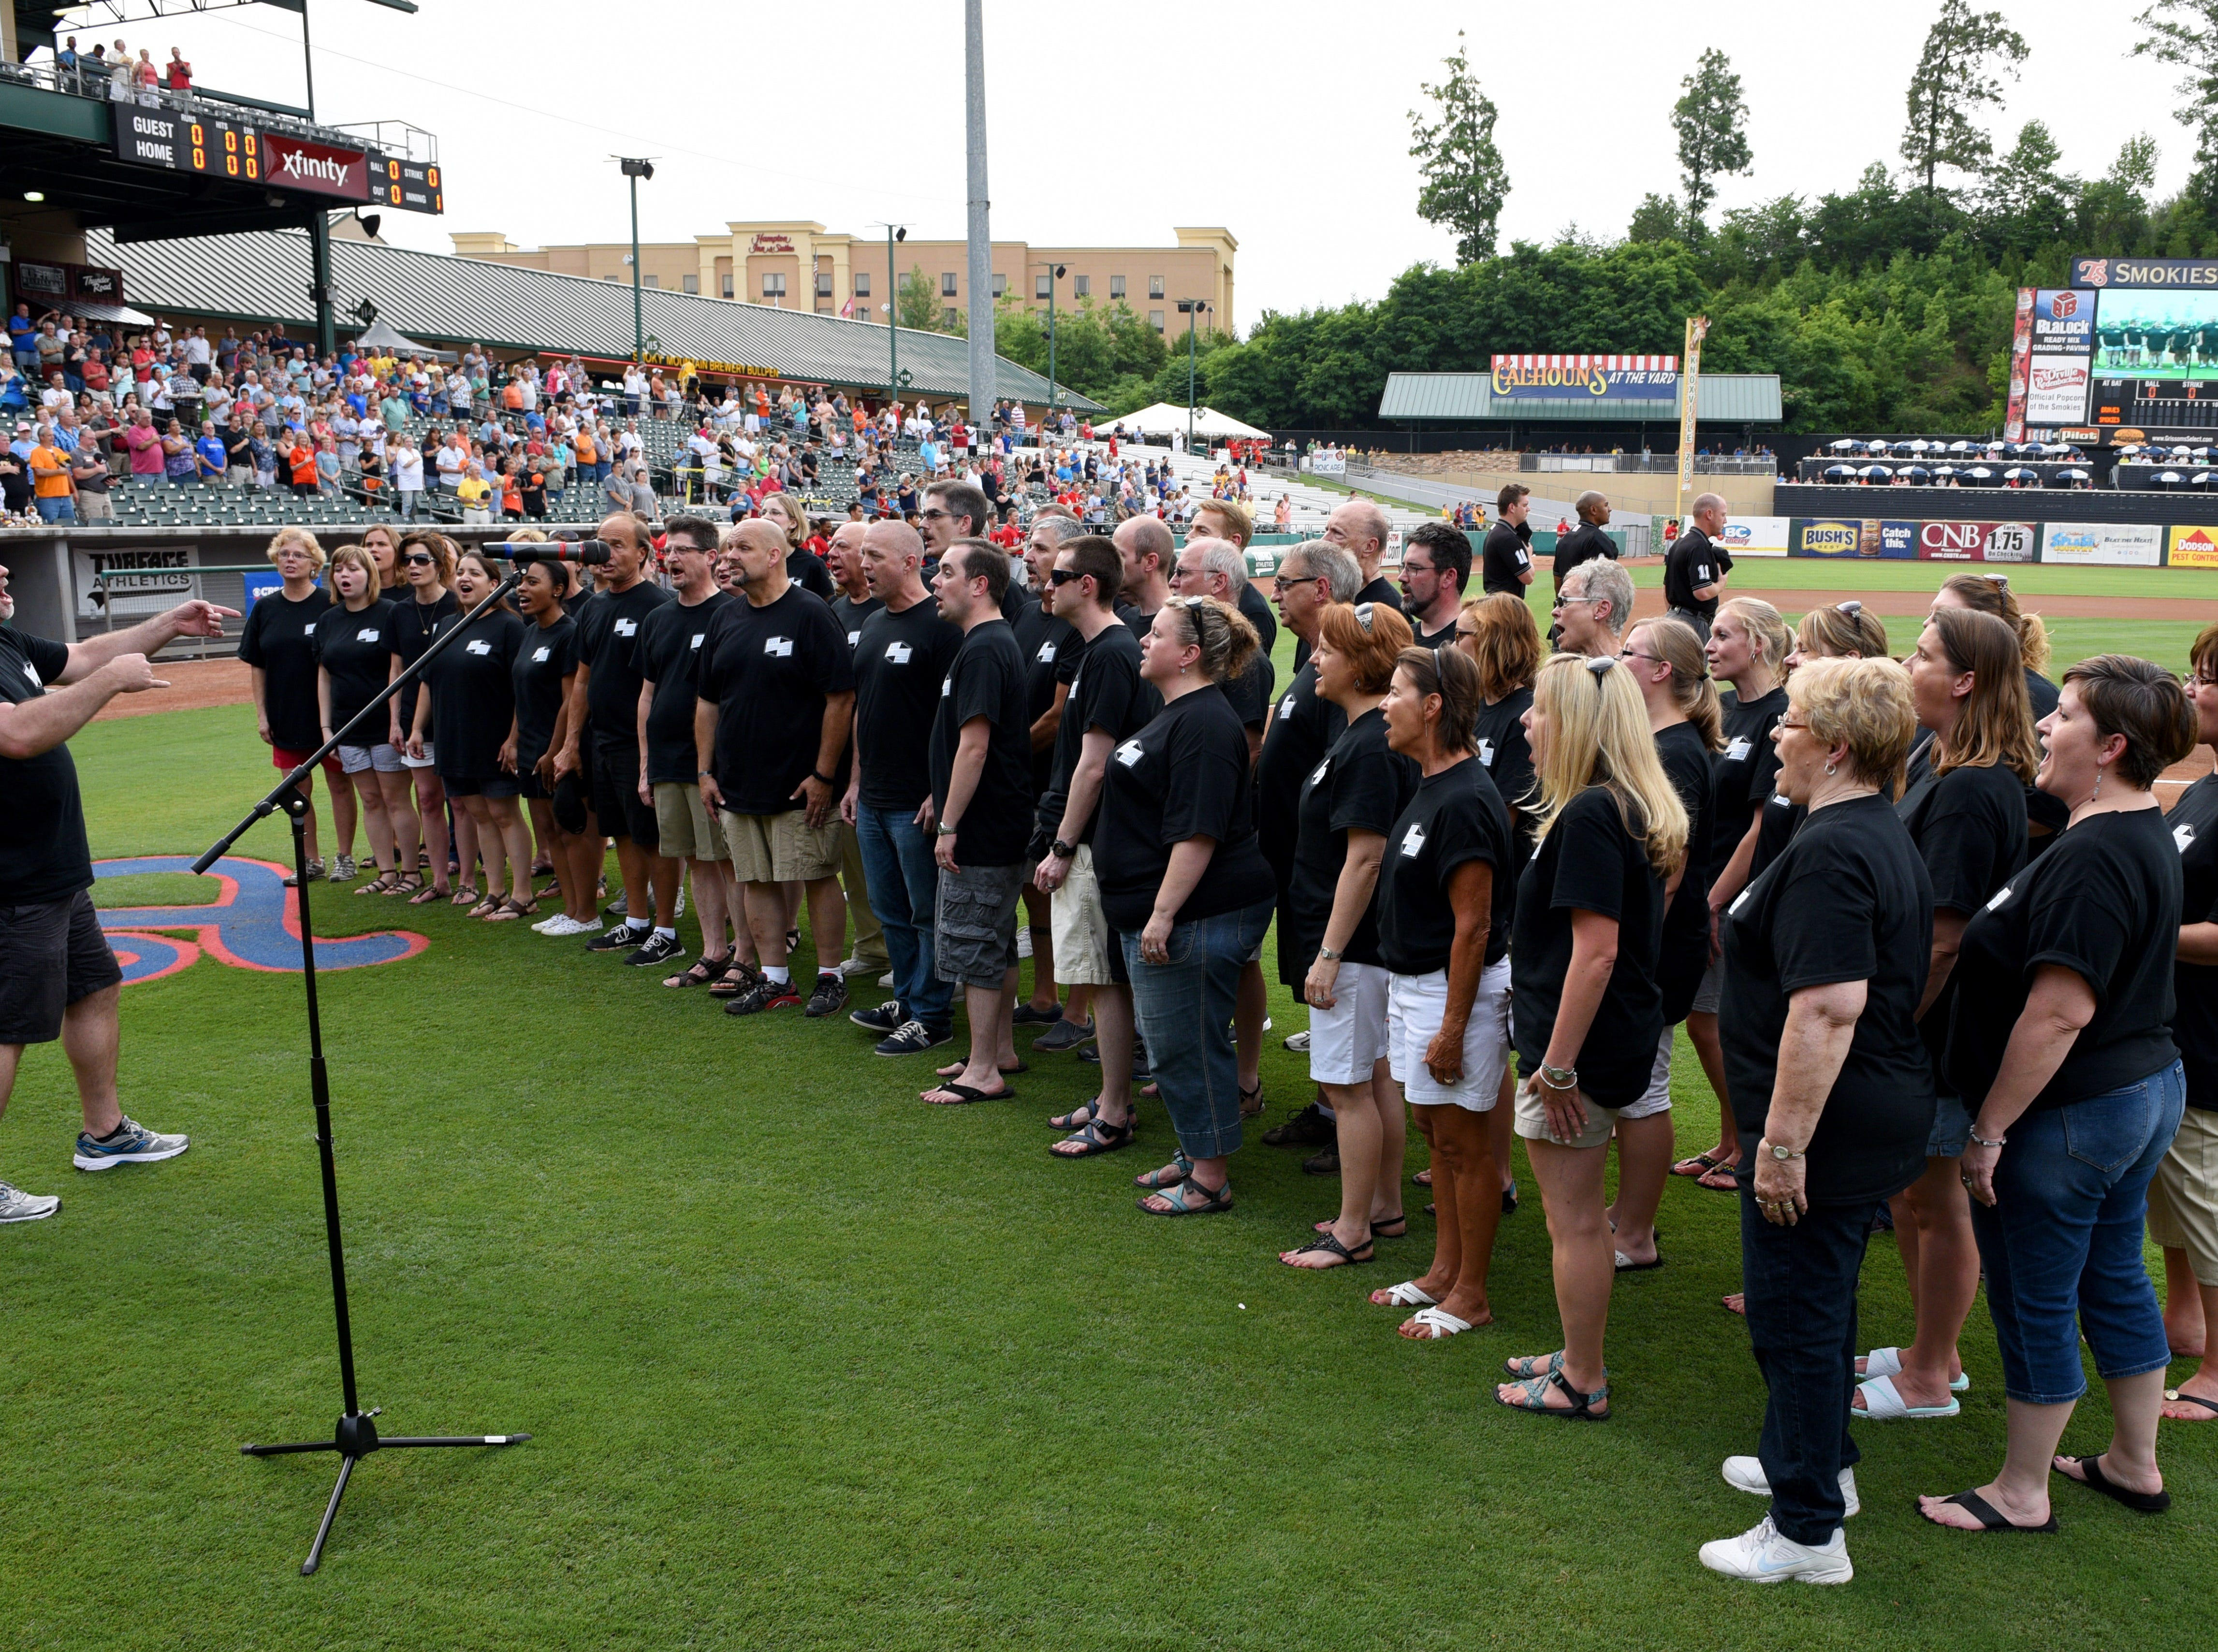 The West Park Baptist Church choir sang the national anthem at the start of the Tennessee Smokies baseball game against the Mississippi Braves televised by CBS Sports Network Thursday, Jun. 18, 2015. Helen Turner, co-founder of the Love Kitchen throwing out the first pitch and money raised at the game goes to the Love Kitchen.